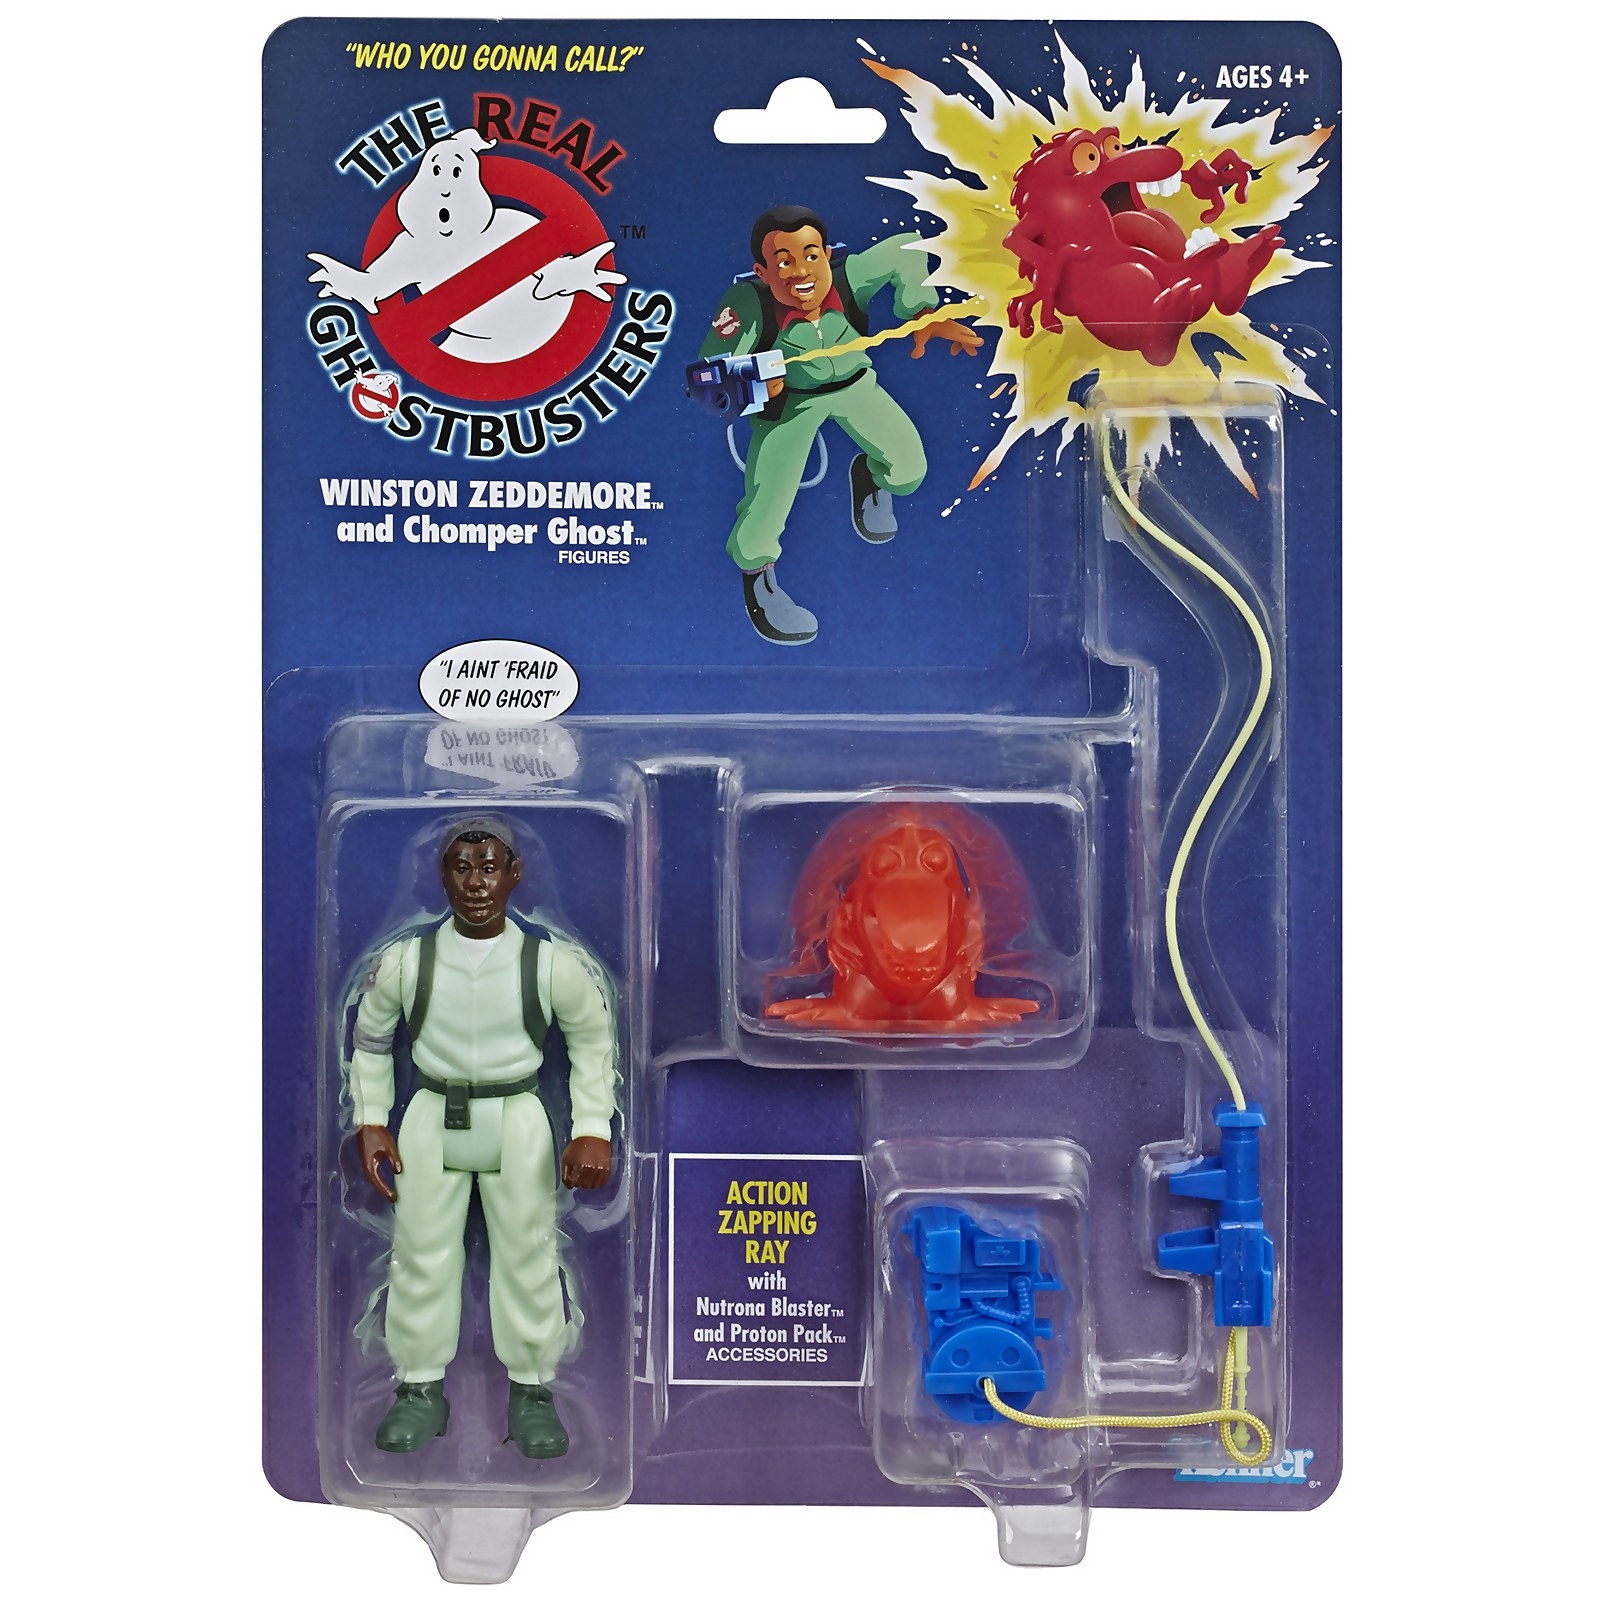 Image of Hasbro Ghostbusters Kenner Classics Winston Zeddemore and Chomper Ghost Retro Action Figure